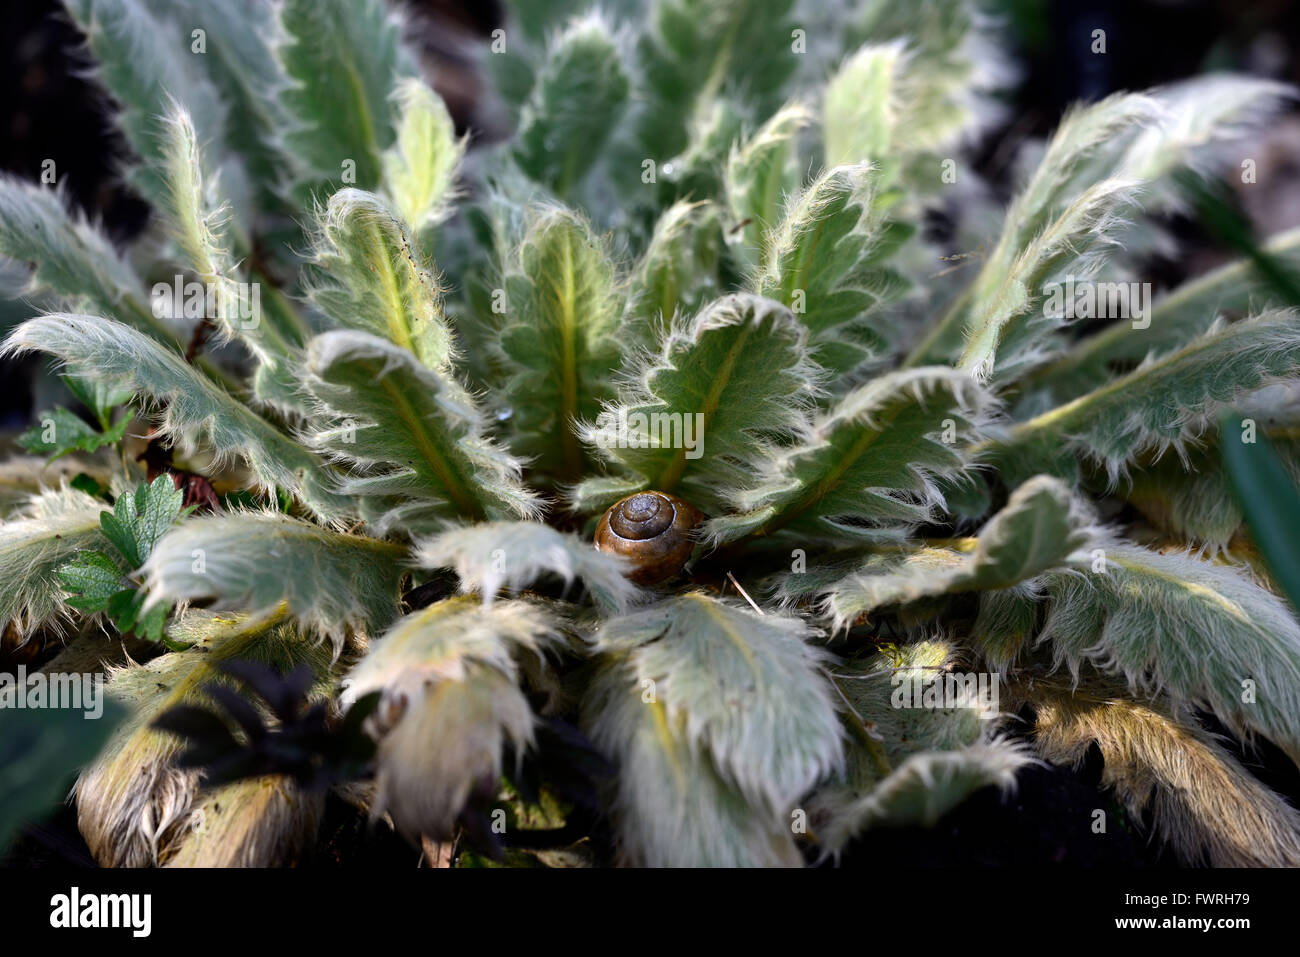 meconopsis foliage leaves hairy spring growth growing shelter snail garden gardening RM Floral - Stock Image